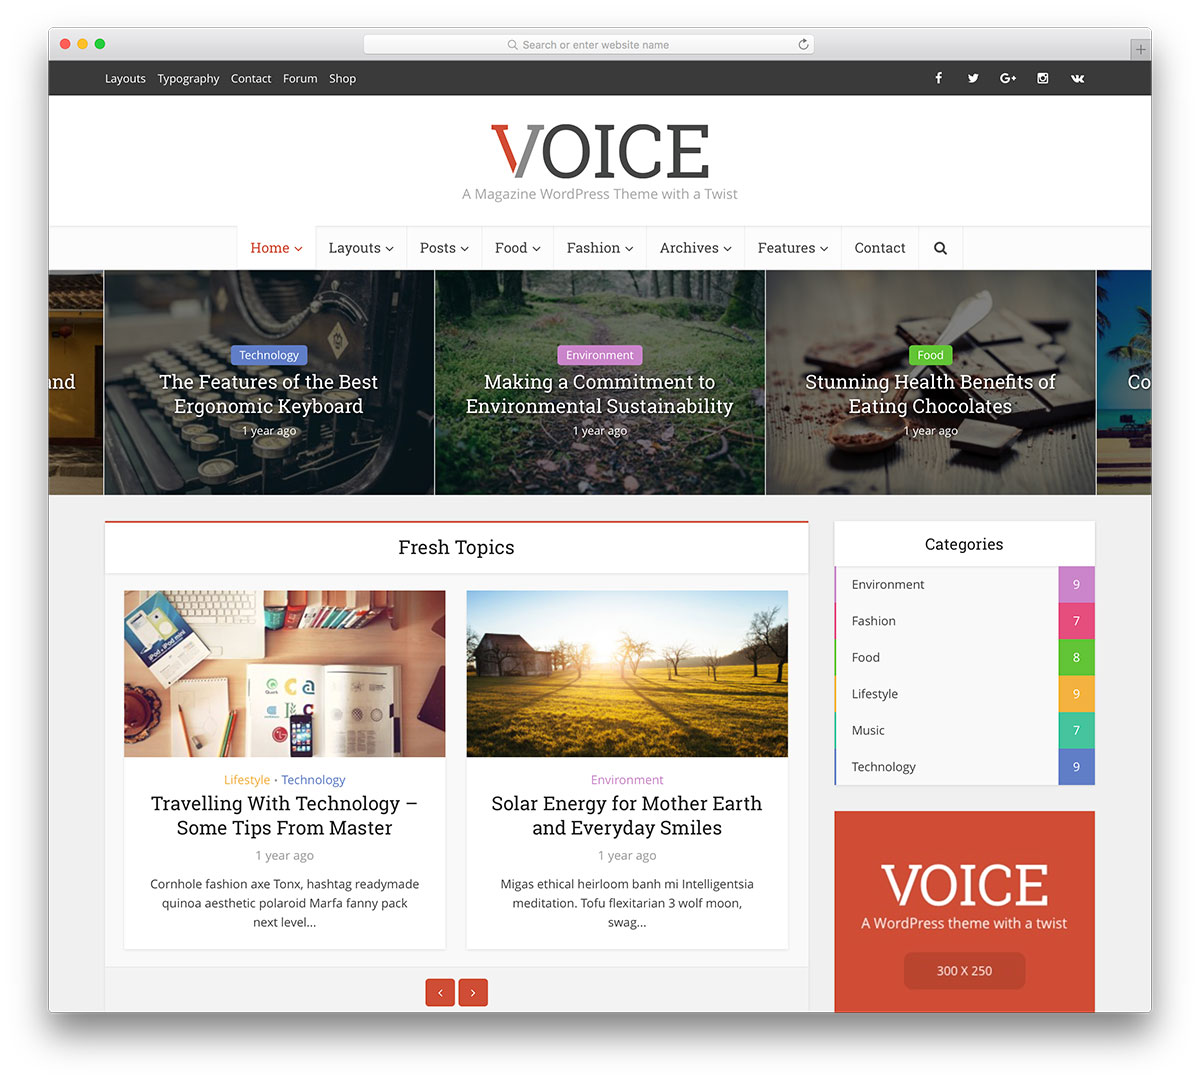 "voice-bright-wordpress-magazine-website-template ""width ="" 1200 ""height ="" 1082 ""data-lazy-srcset ="" https://cdn.colorlib.com/wp/wp-content/uploads/sites/2 /voice-bright-wordpress-magazine-website-template.jpg 1200w, https://cdn.colorlib.com/wp/wp-content/uploads/sites/2/voice-bright-wordpress-magazine-website-template- 300x271.jpg 300w, https://cdn.colorlib.com/wp/wp-content/uploads/sites/2/voice-bright-wordpress-magazine-website-template-768x692.jpg 768w, https: // cdn. colorlib.com/wp/wp-content/uploads/sites/2/voice-bright-wordpress-magazine-website-template-1024x923.jpg 1024w ""data-lazy-tailles ="" (largeur maximale: 1200px) 100vw, 1200px ""data-lazy-src ="" https://webypress.fr/wp-content/uploads/2018/12/1545204160_71_Plus-de-30-thèmes-WordPress-étonnants-pour-le-magazine-2018.jpg?is-pending-load= 1 ""srcset ="" données: image / gif; base64, R0lGODlhAQABAIAAAAAAAP /// yH5BAEAAAAALAAAAAABAAAAAAIBRAA7 ""/></p> <p><noscript><img class="